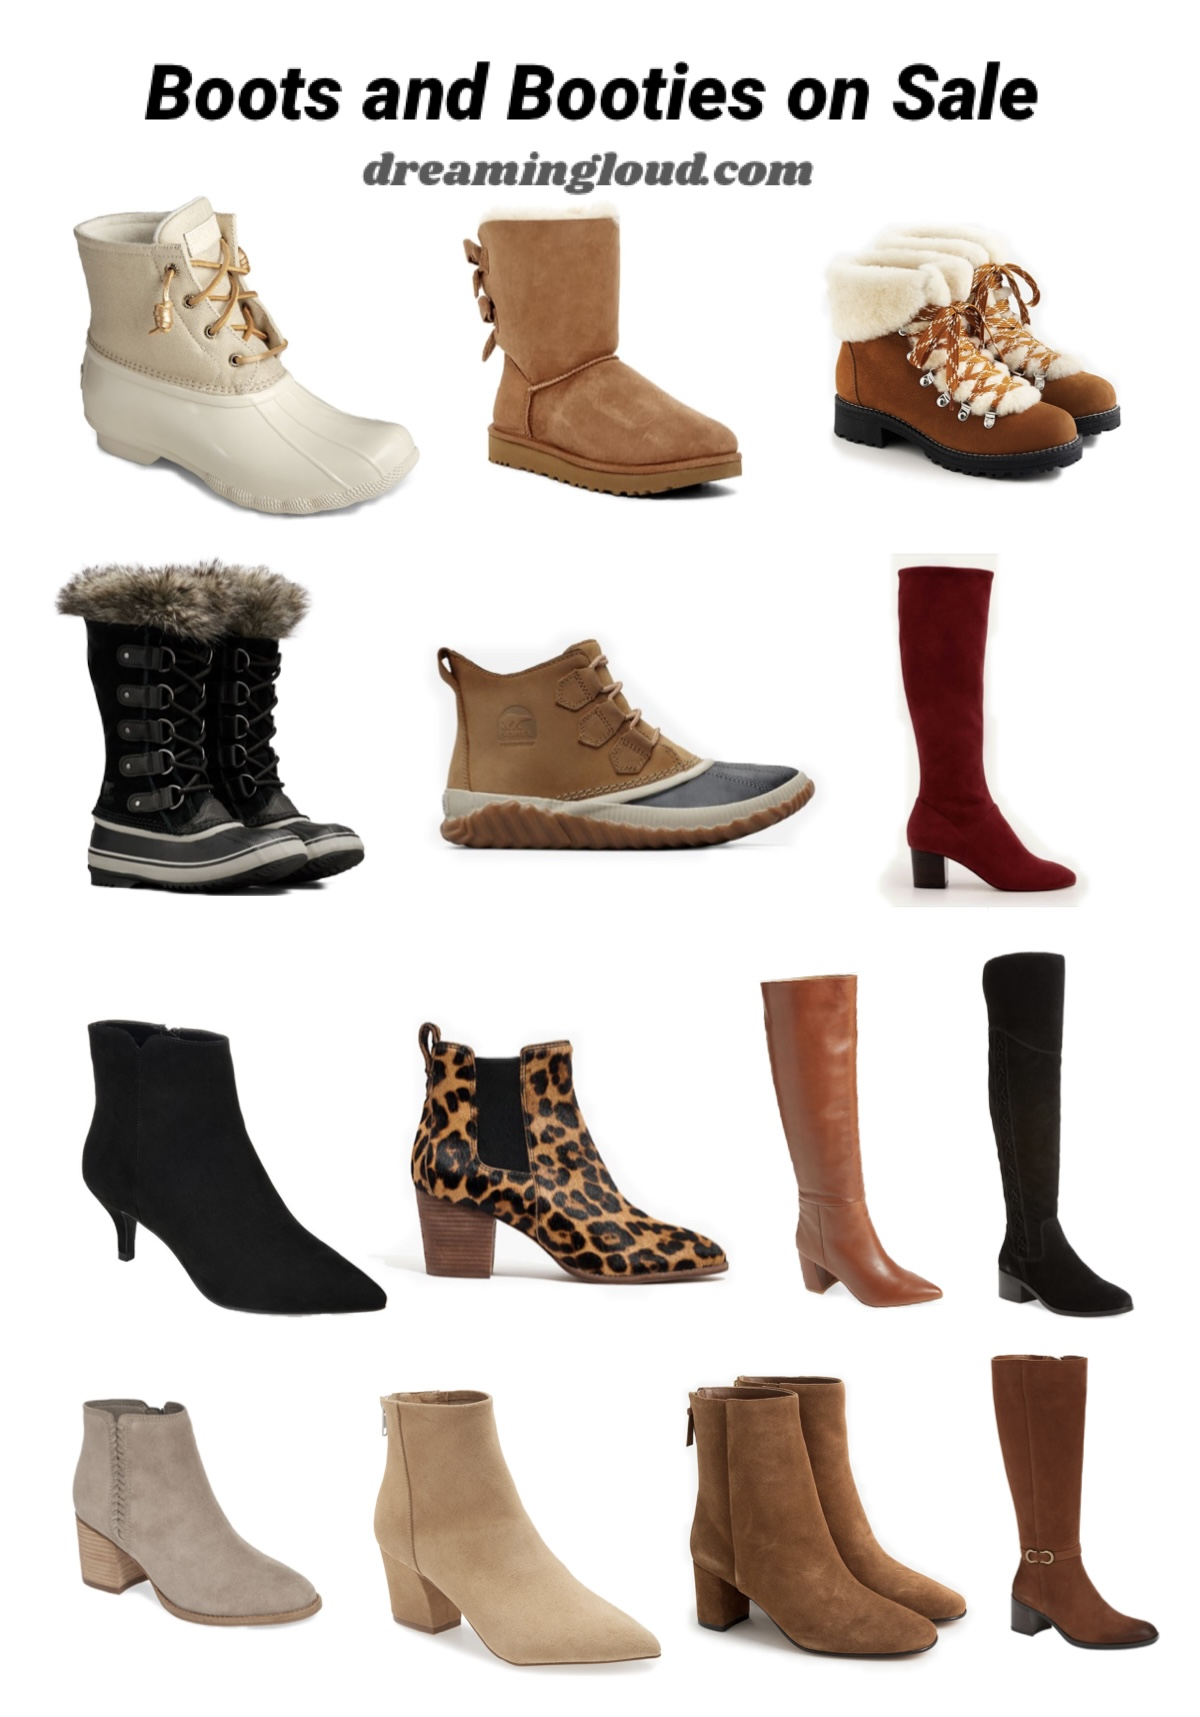 Cyber Monday Sales- Boots and Booties |Green Beauty by popular Maryland beauty blog, Dreaming Loud: collage image of women's boots and booties.